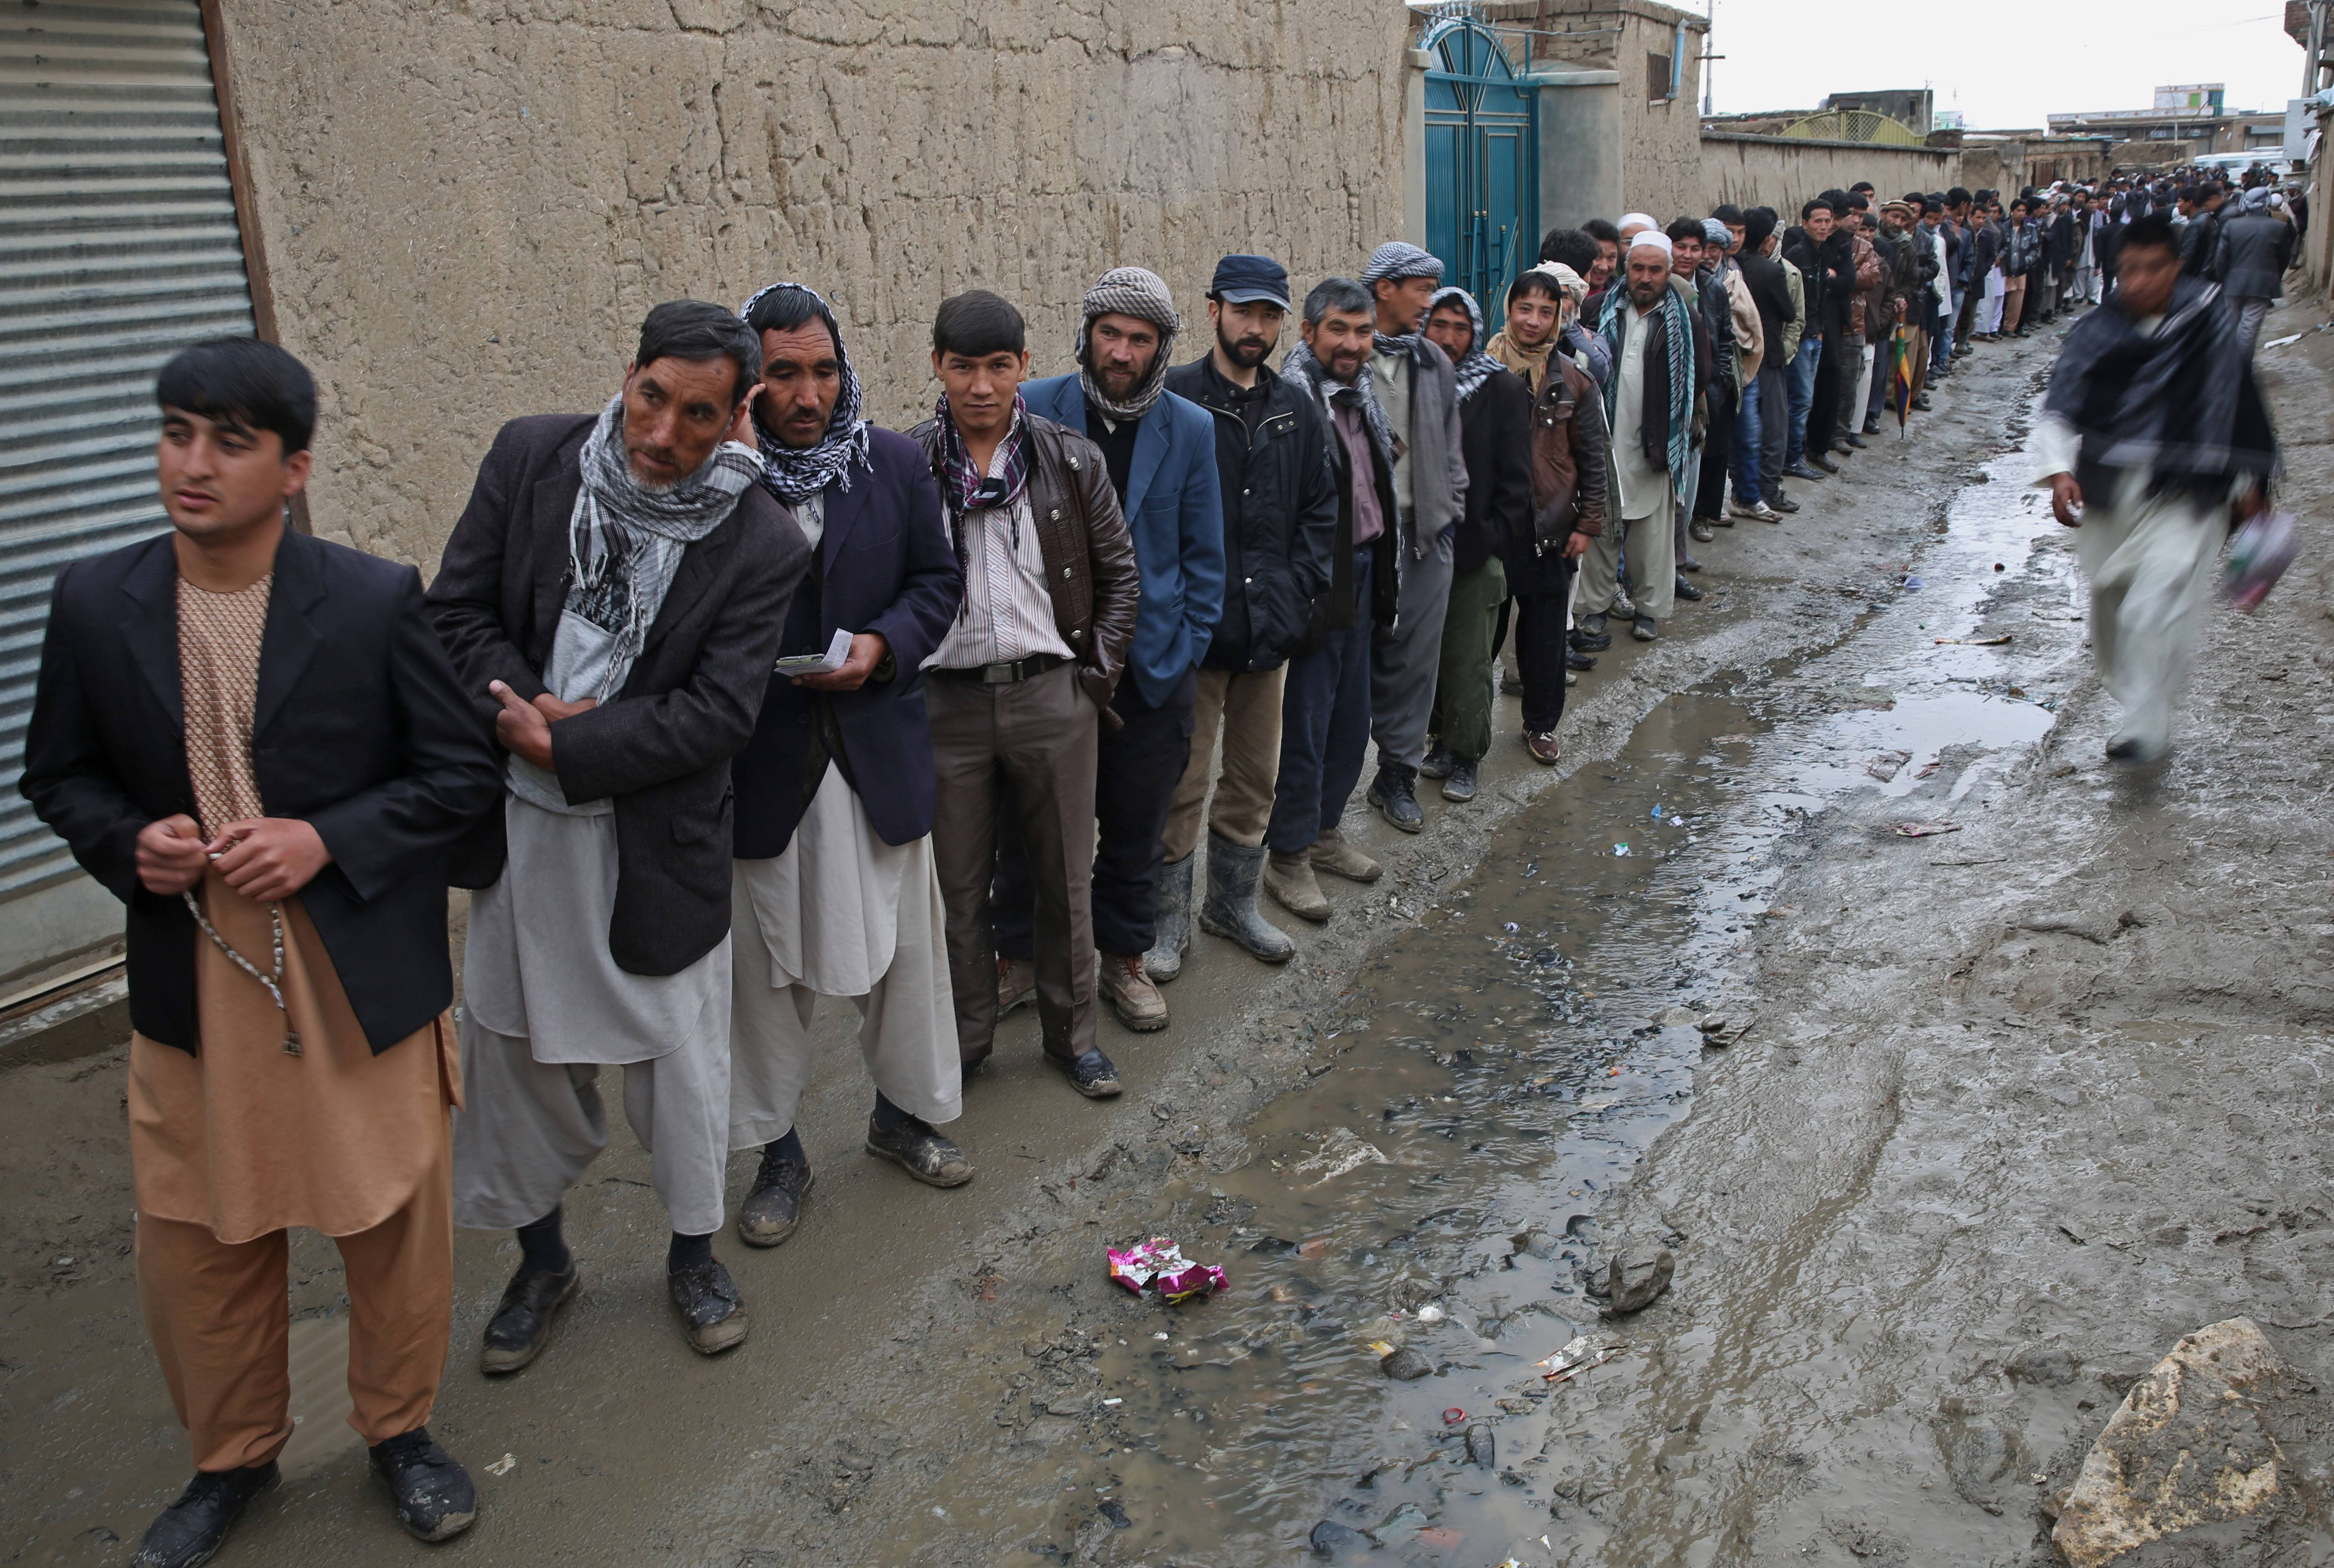 Afghan men line up for the registration process before they cast their votes at a polling station in Kabul, Afghanistan, Saturday.